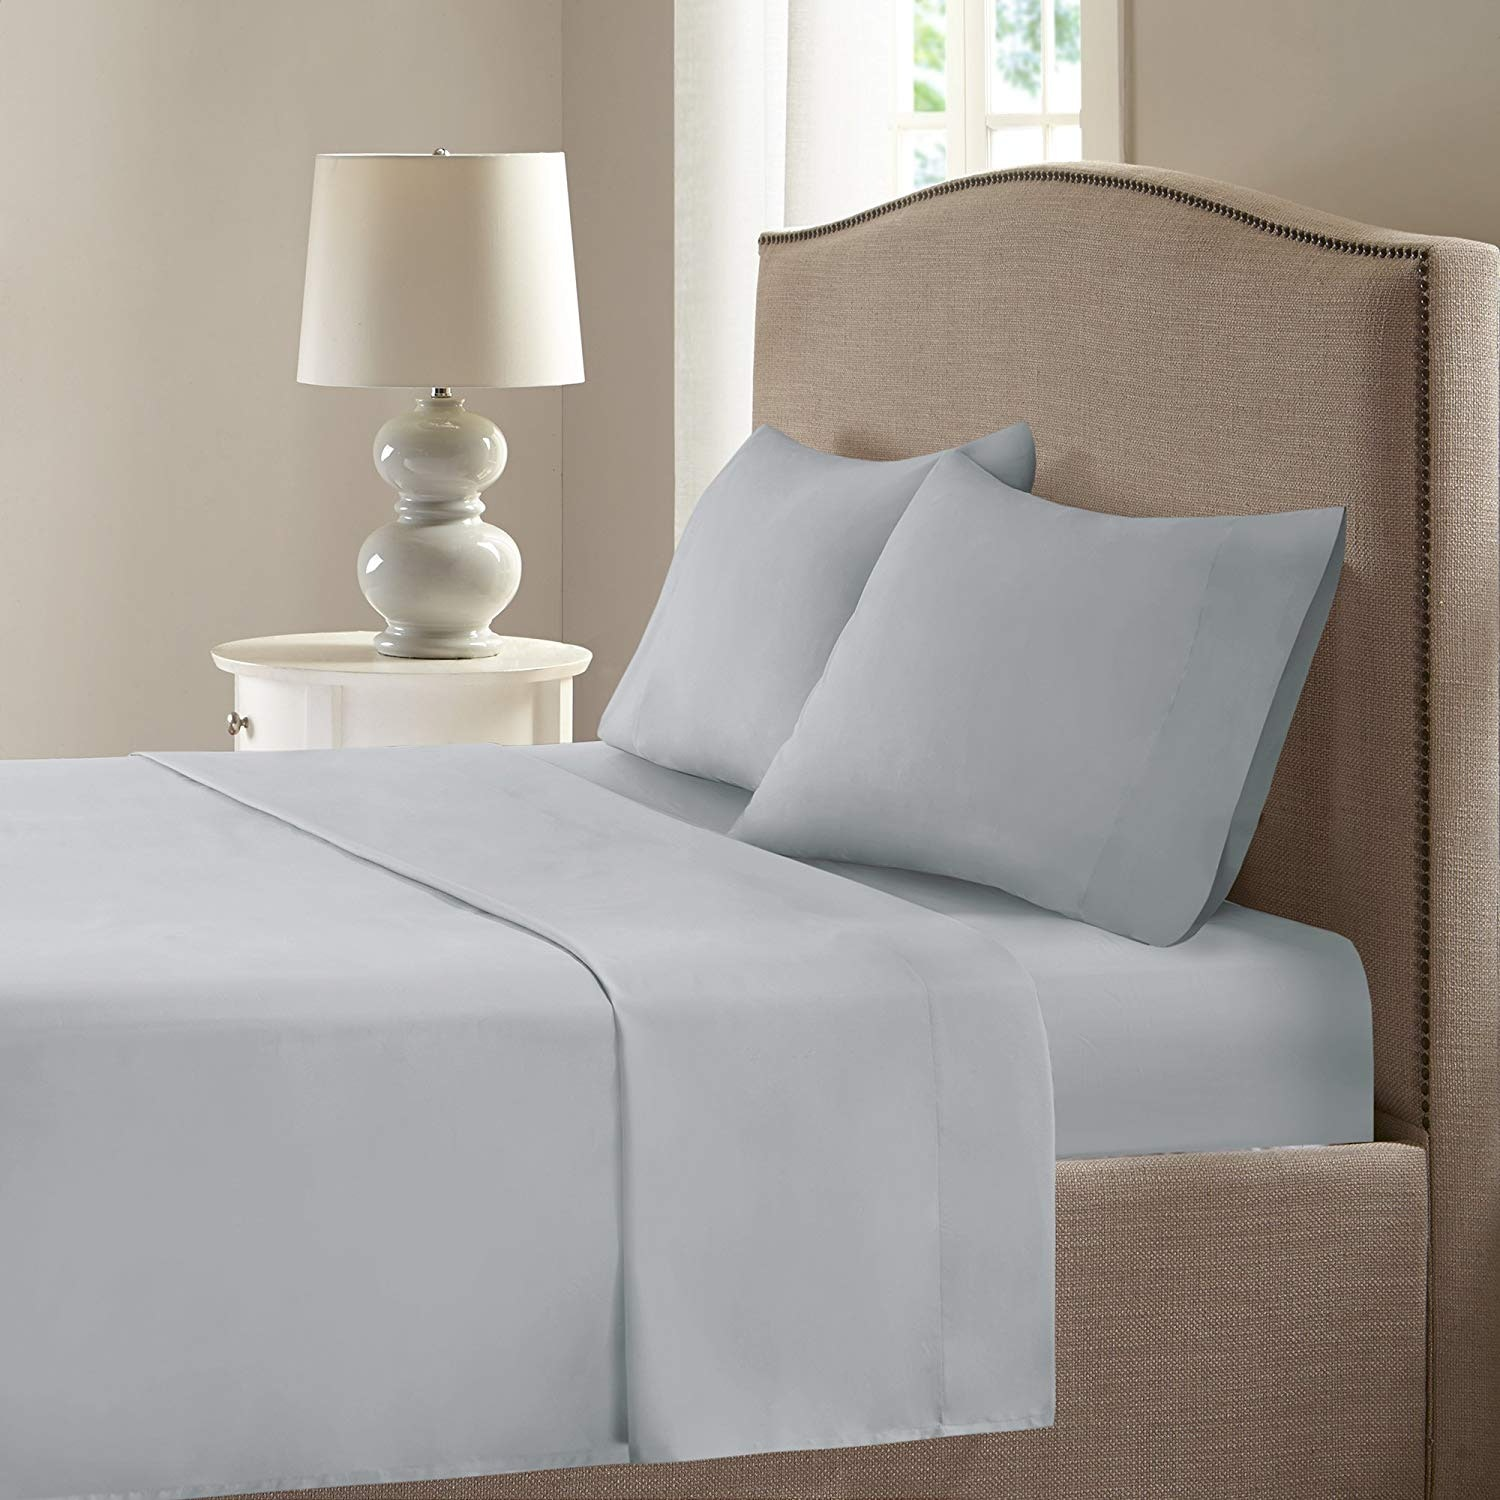 Best Sheets For Summer The 10 Best Sheets To Keep You Cool All Night